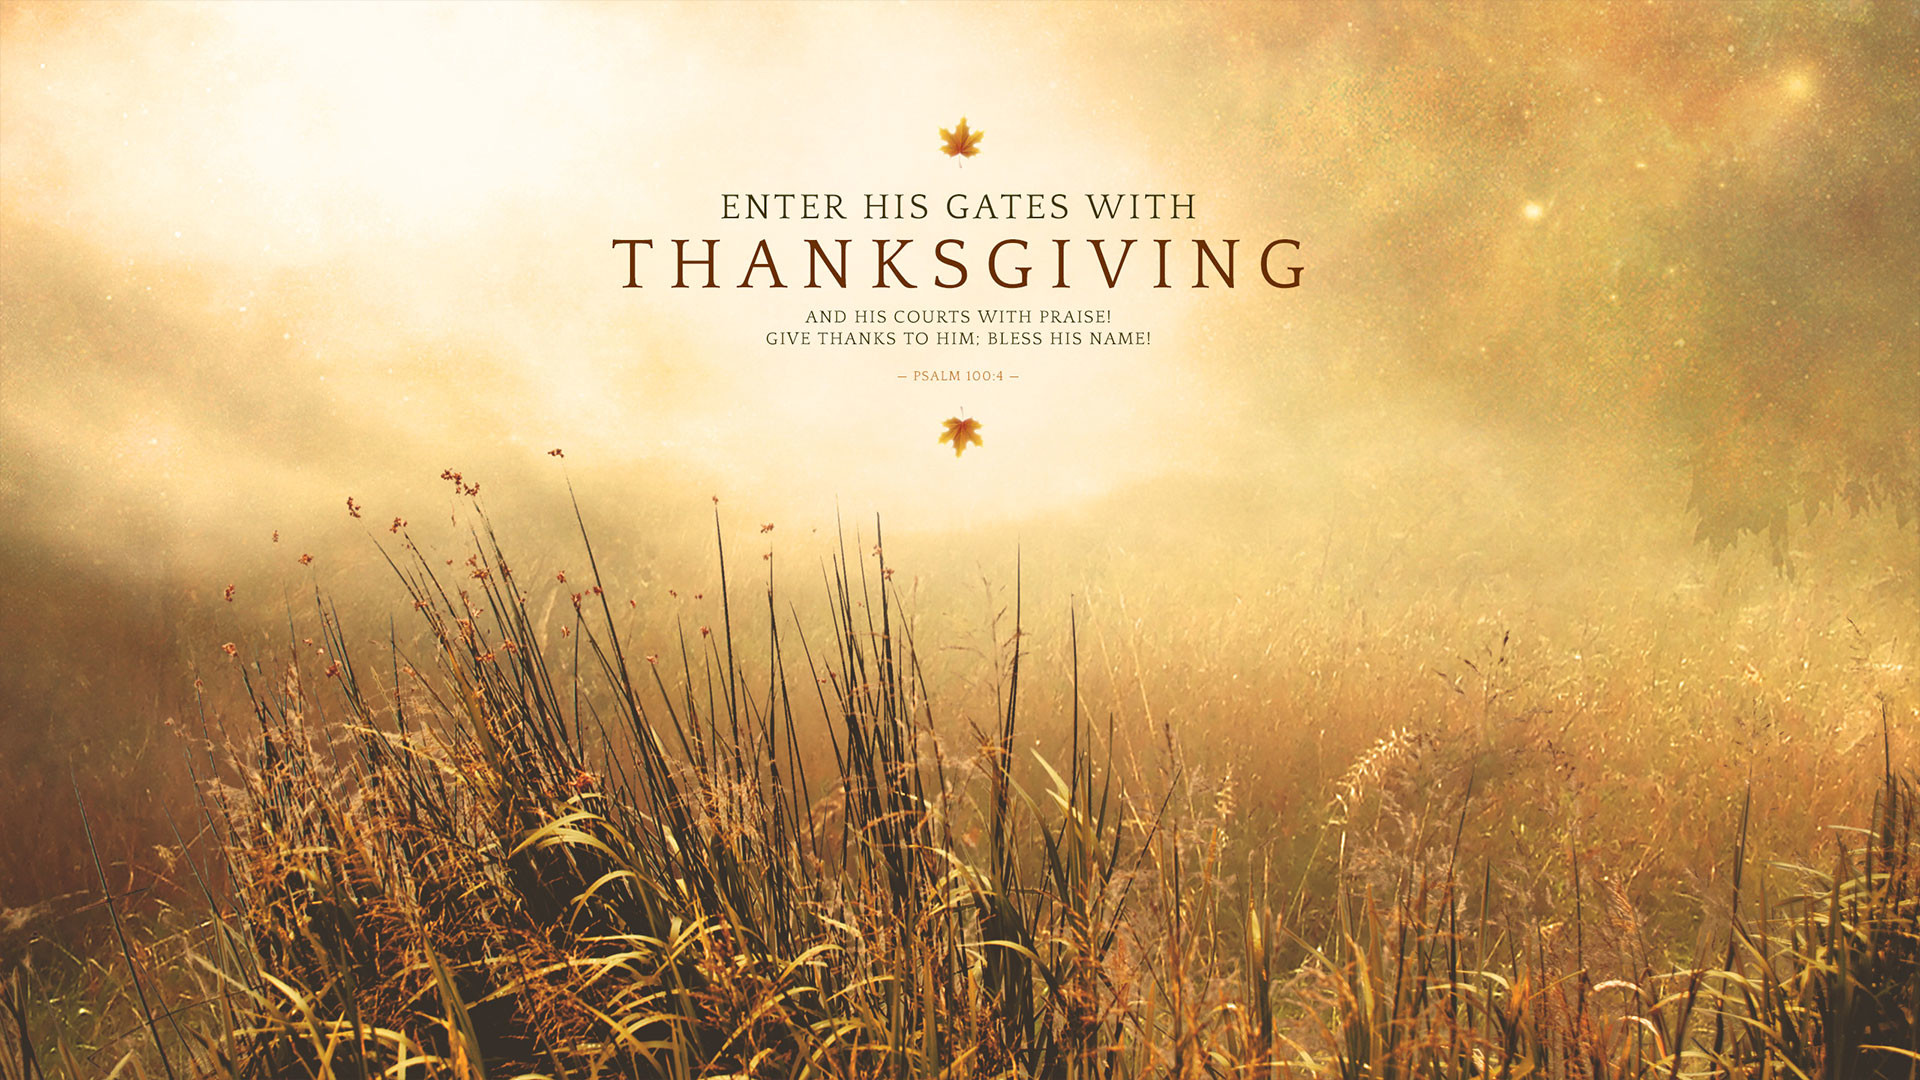 Wednesday Wallpaper: Enter His Gates with Thanksgiving – Jacob Abshire